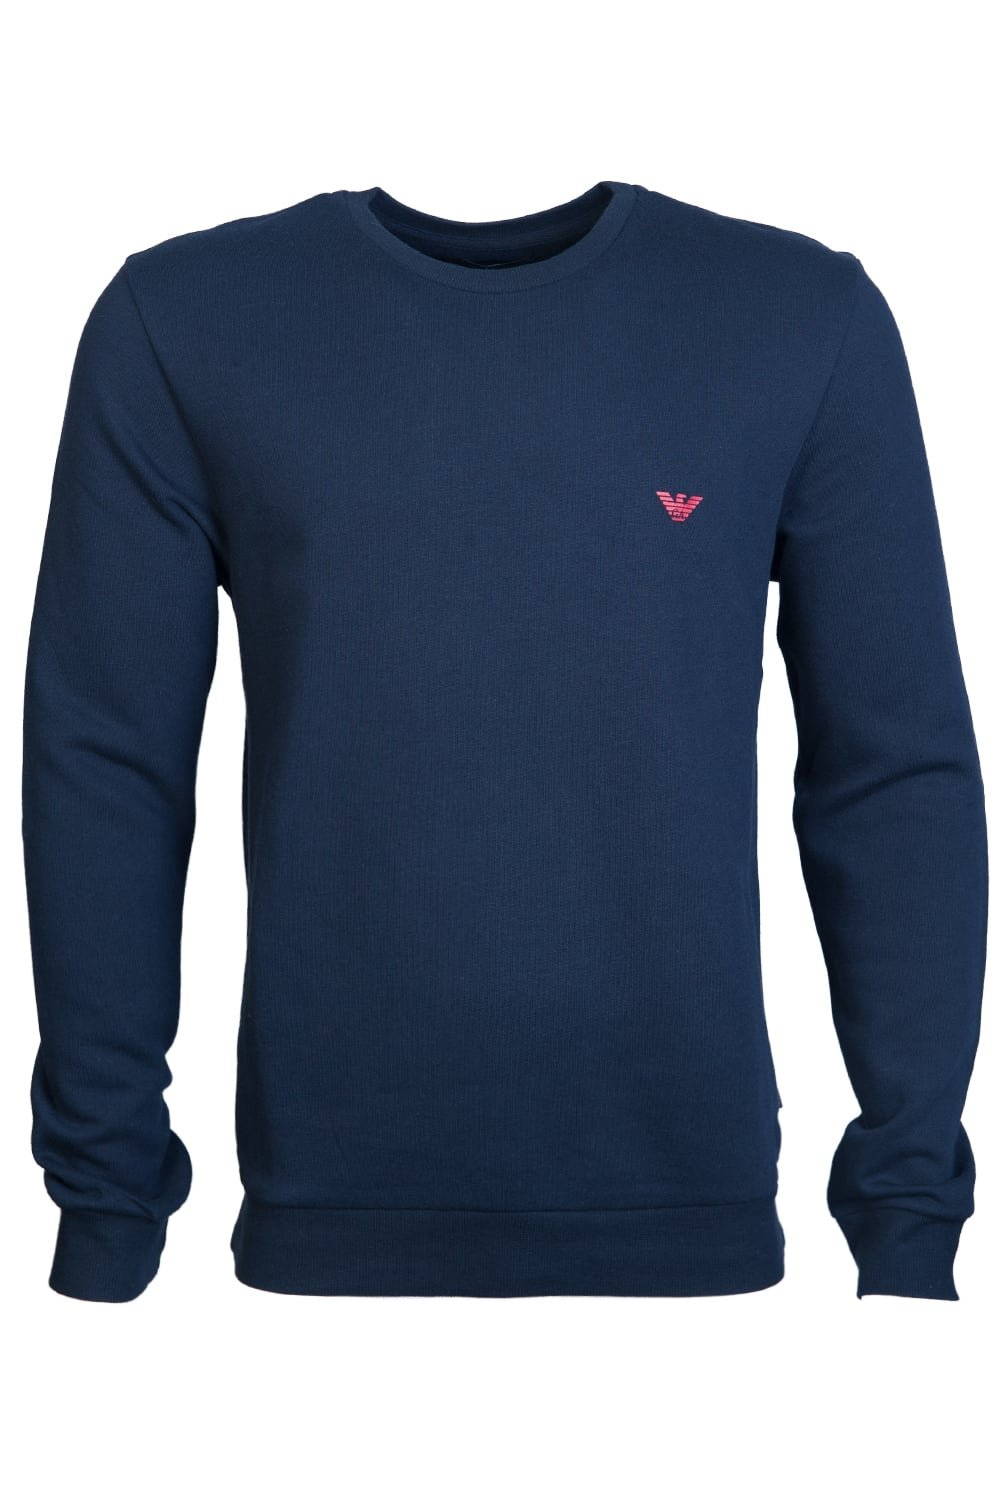 Emporio Armani Men's Basic French Terry Sweater, Marine, M